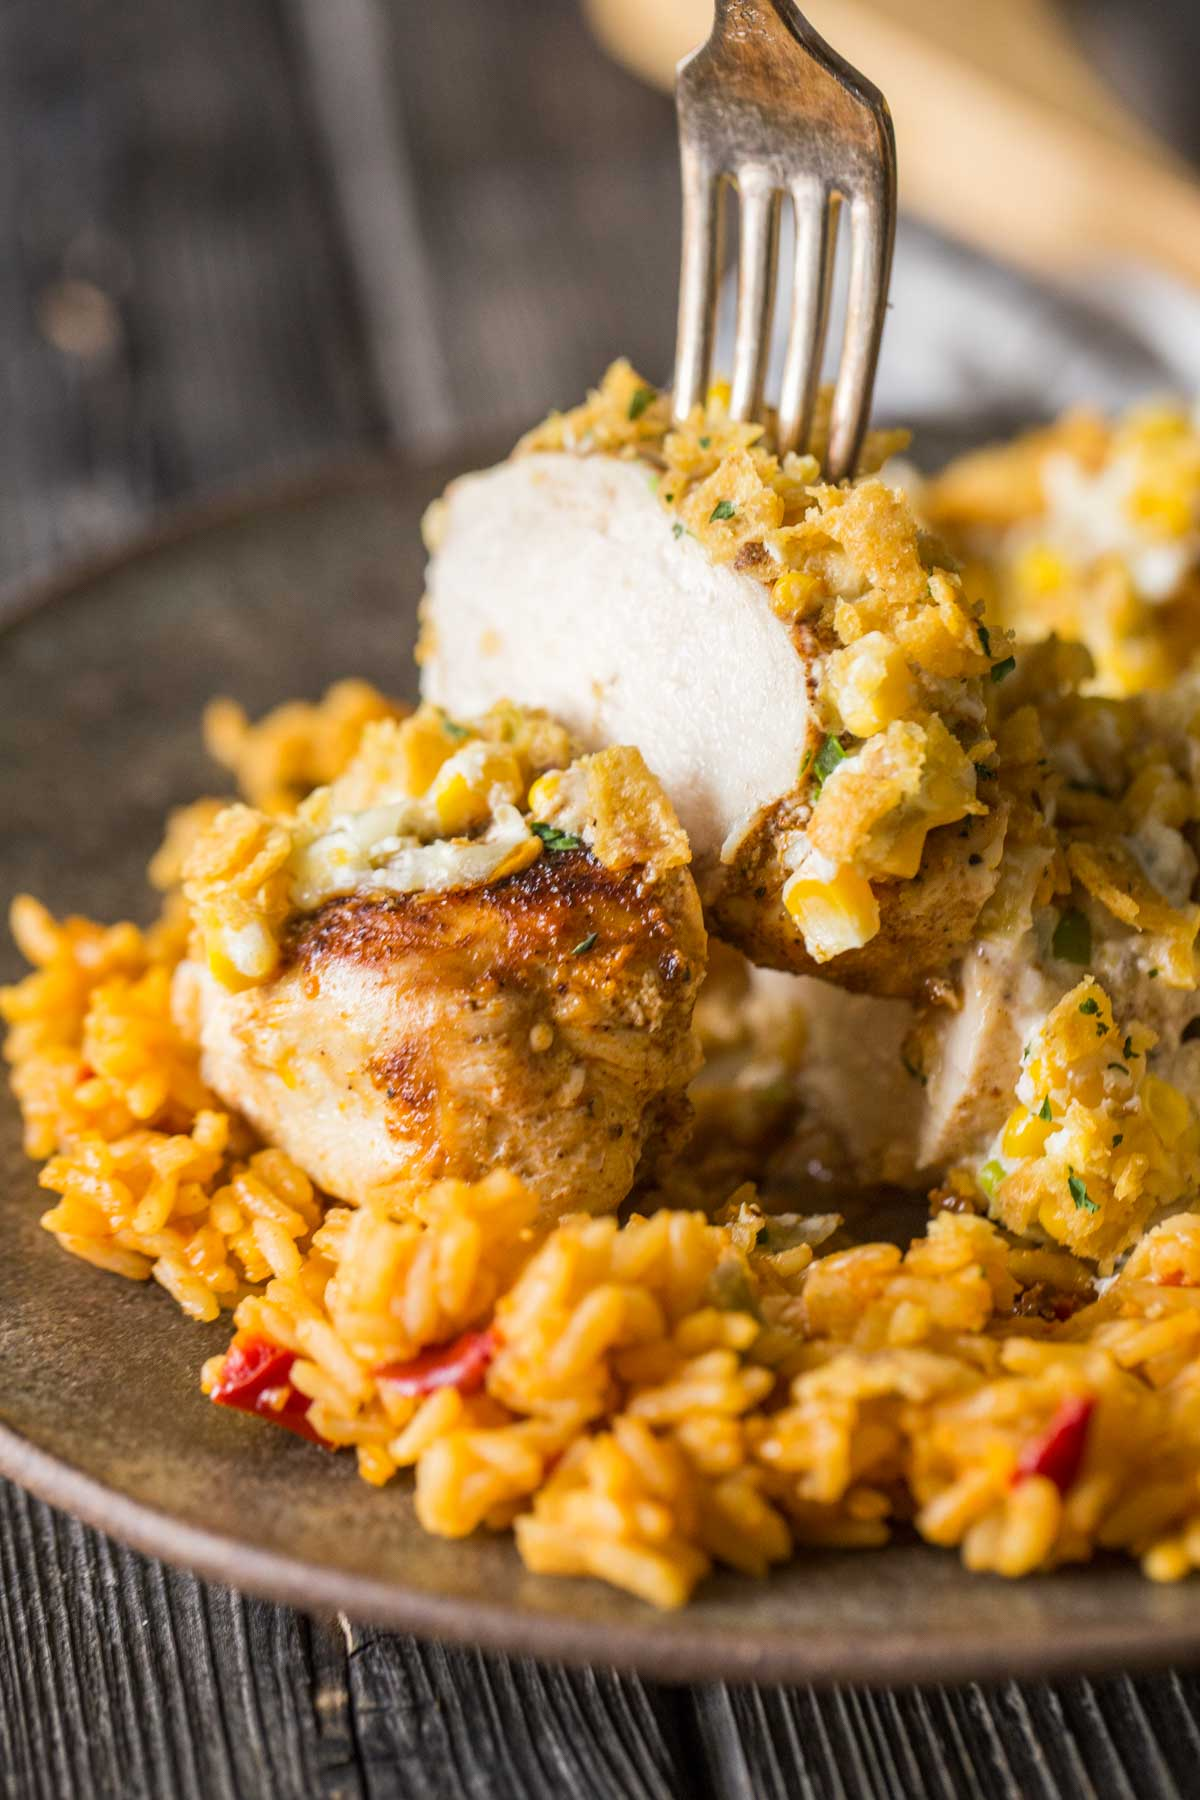 Slice of Creamy Cheesy Frito Chicken Skillet lifted off a plate with a fork.